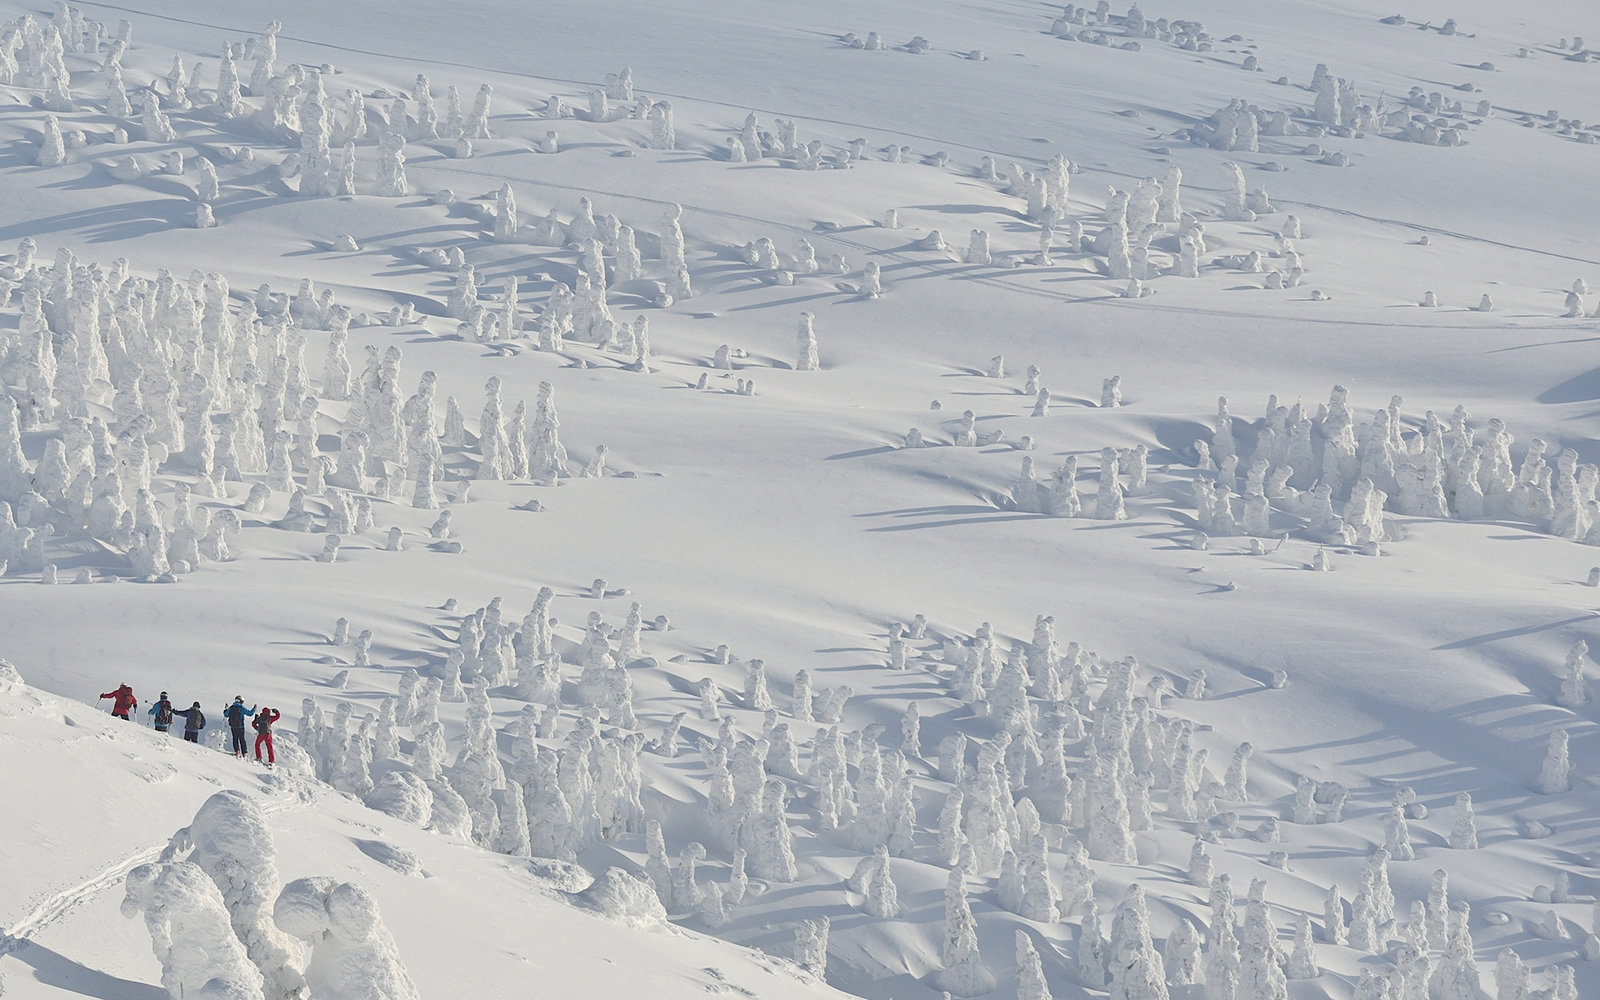 These walkers brave freezing conditions and trek across a snowy mountain - and look like they are joined by thousands of snowmen. The stunning shots show hikers making their way through heavy snow in a 5000ft high mountain range in below freezing temper